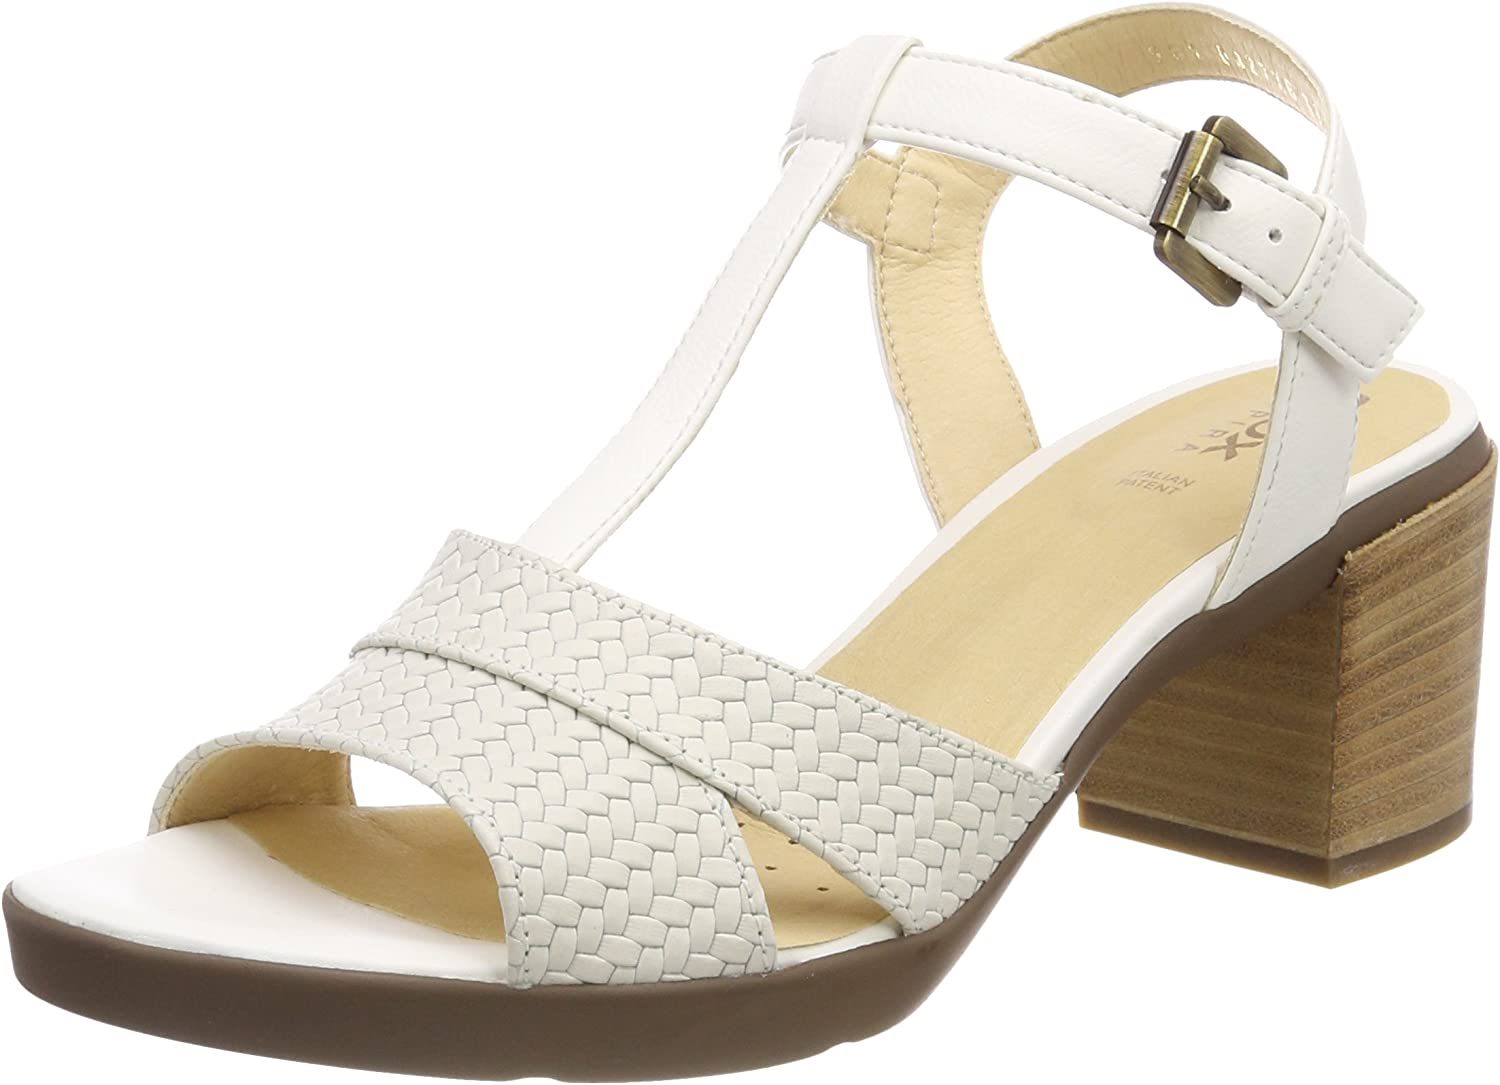 Geox Sandal Woman with Medium Heel White Article dirty-D827XB 06RBC C1002 D Annya M.S.B. New Spring Summer Collection 2018